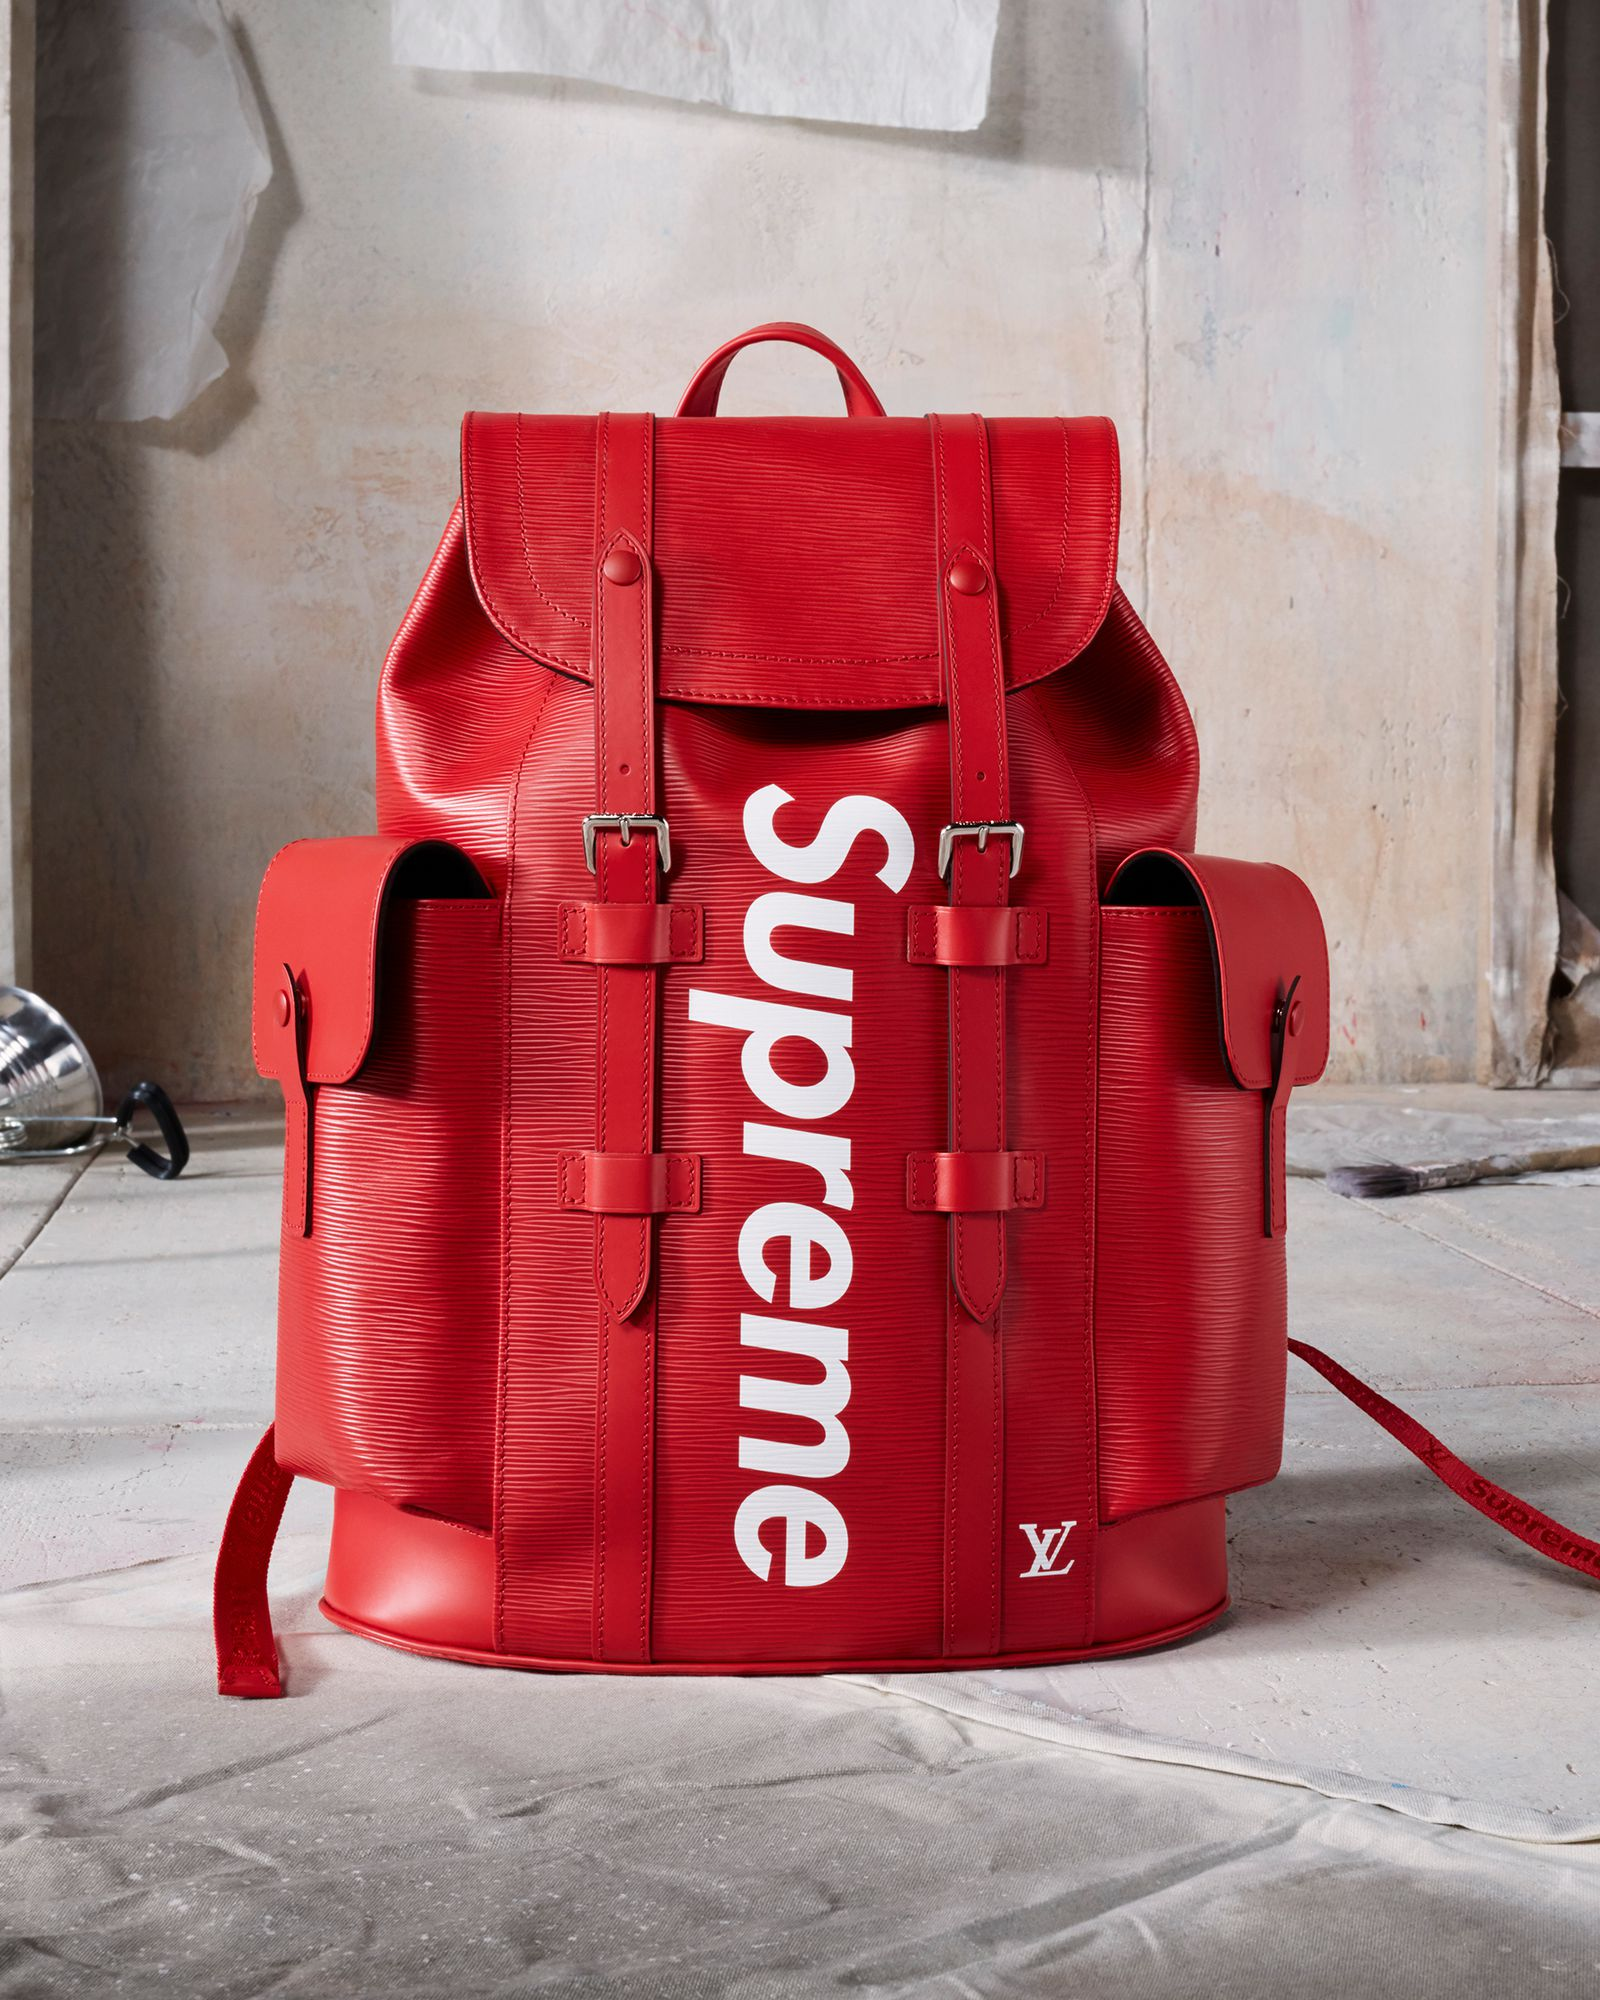 Louis Vuitton X Supreme Collection In Singapore On 14 July